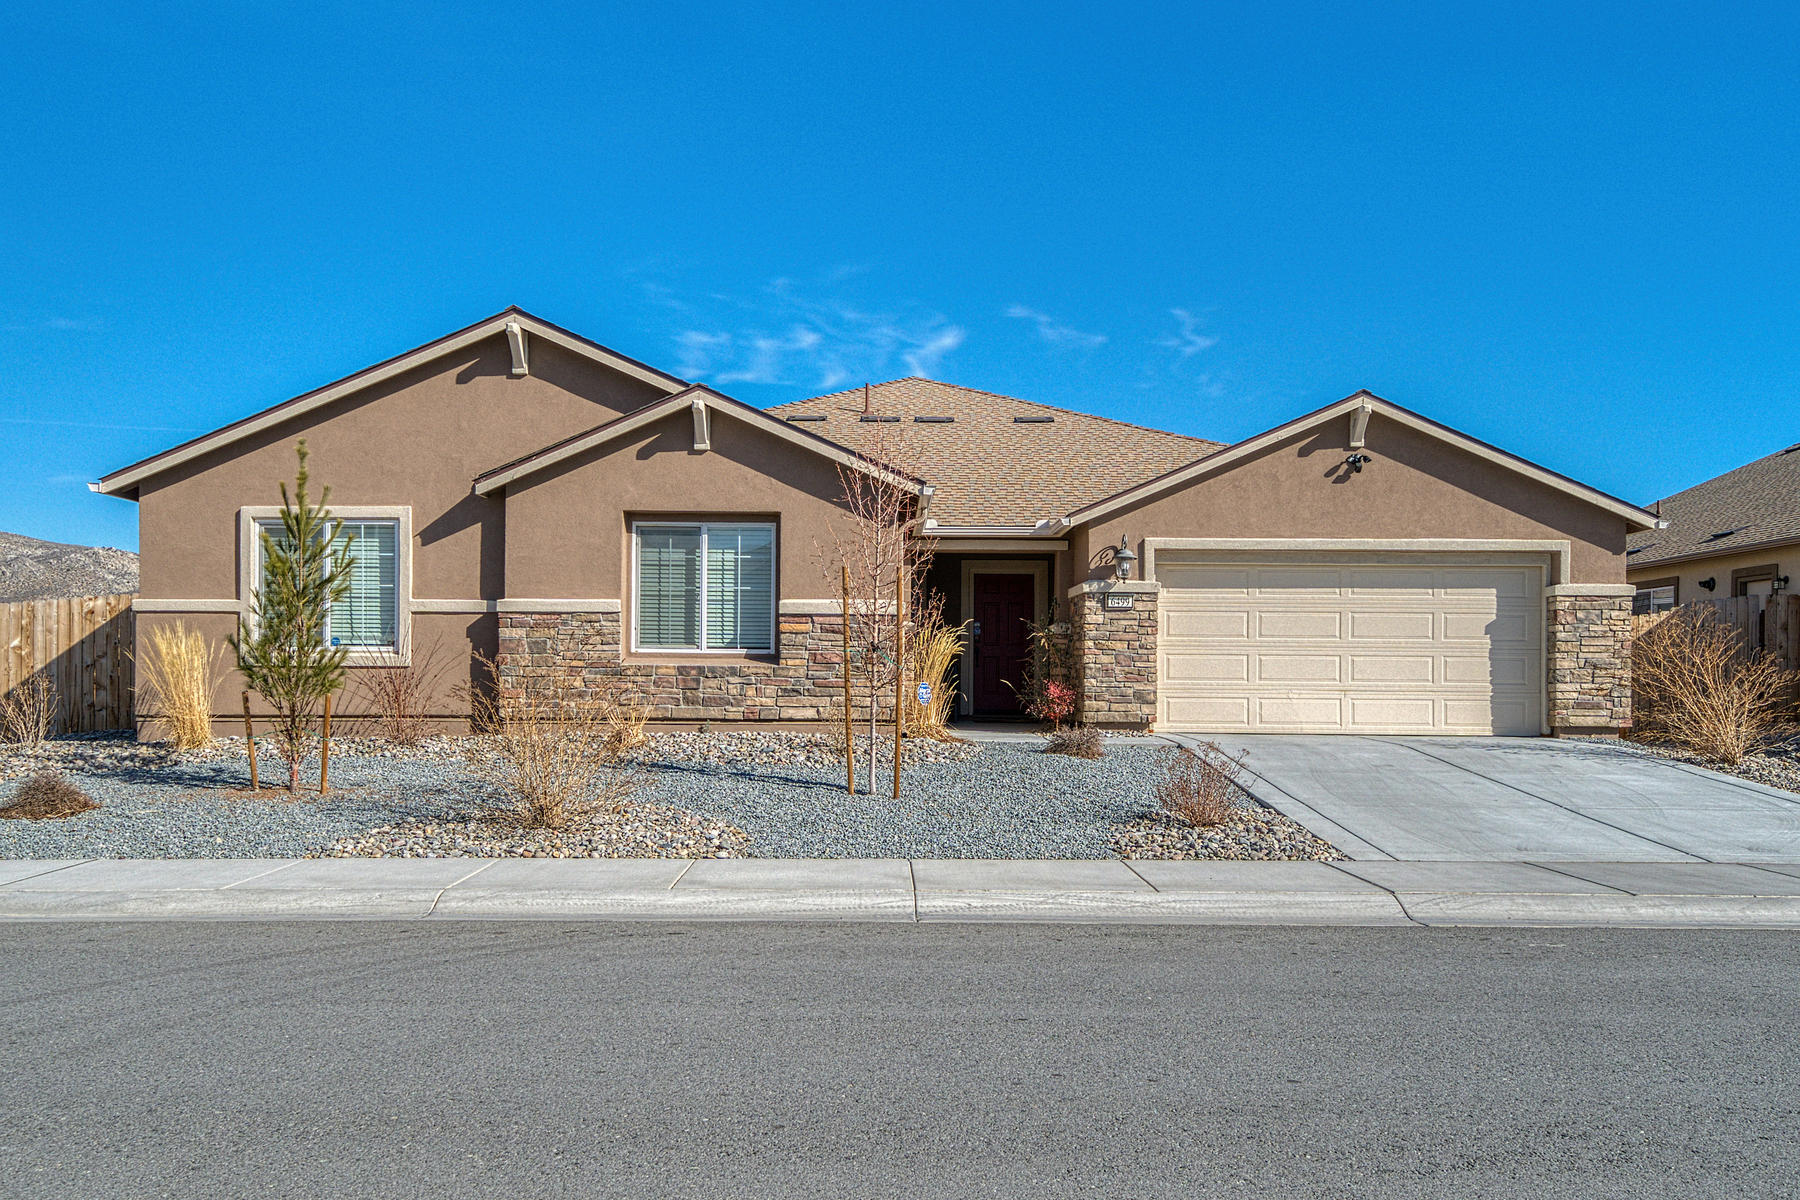 Single Family Homes for Active at 6499 Cone Peak Drive, Carson City, NV 89701 6499 Cone Peak Drive Carson City, Nevada 89701 United States